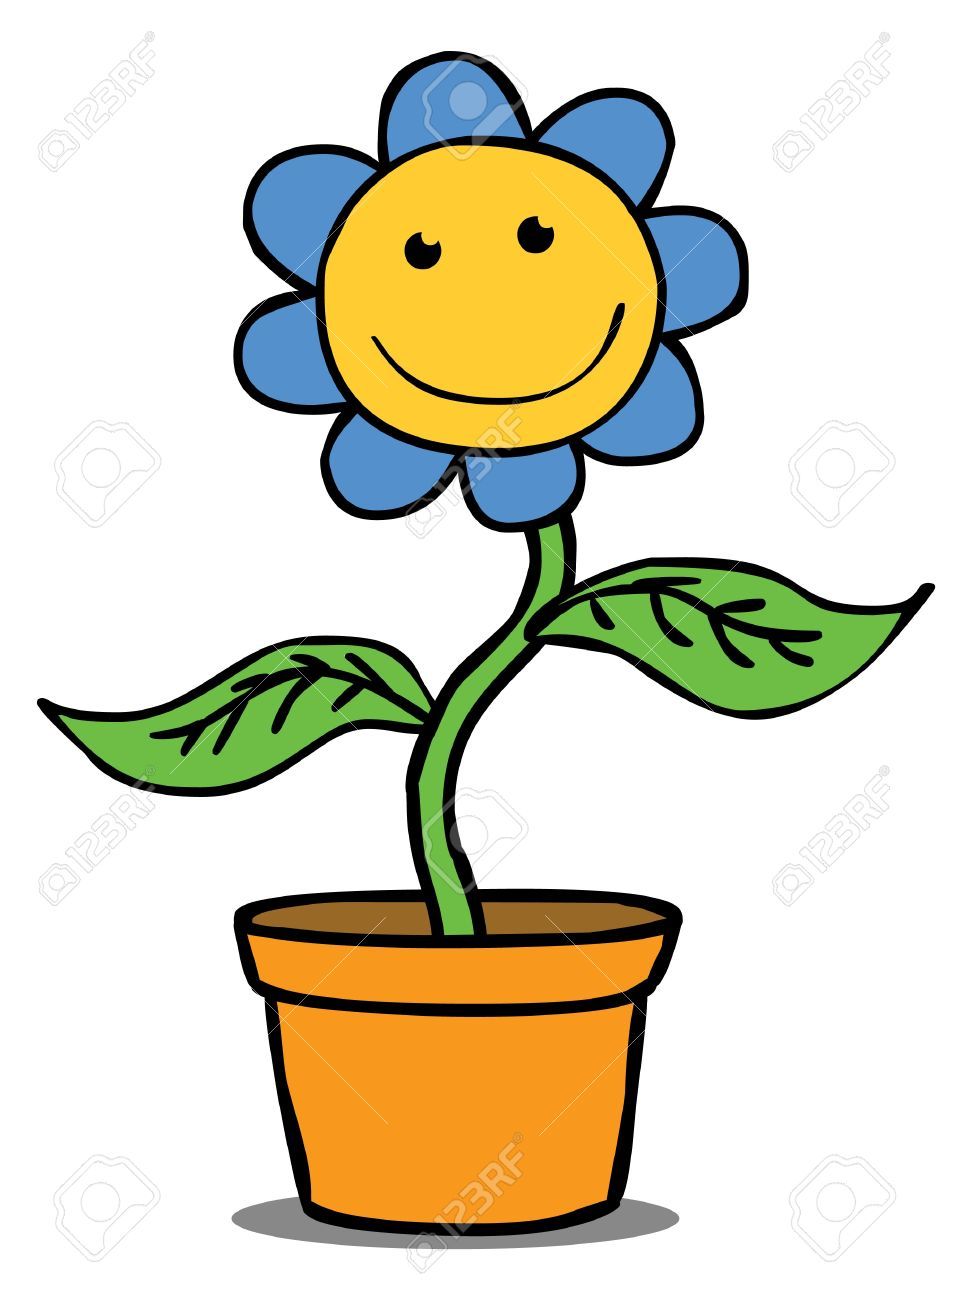 Represent A Smiling Flower In A Pot Well Layered Vector EPS.